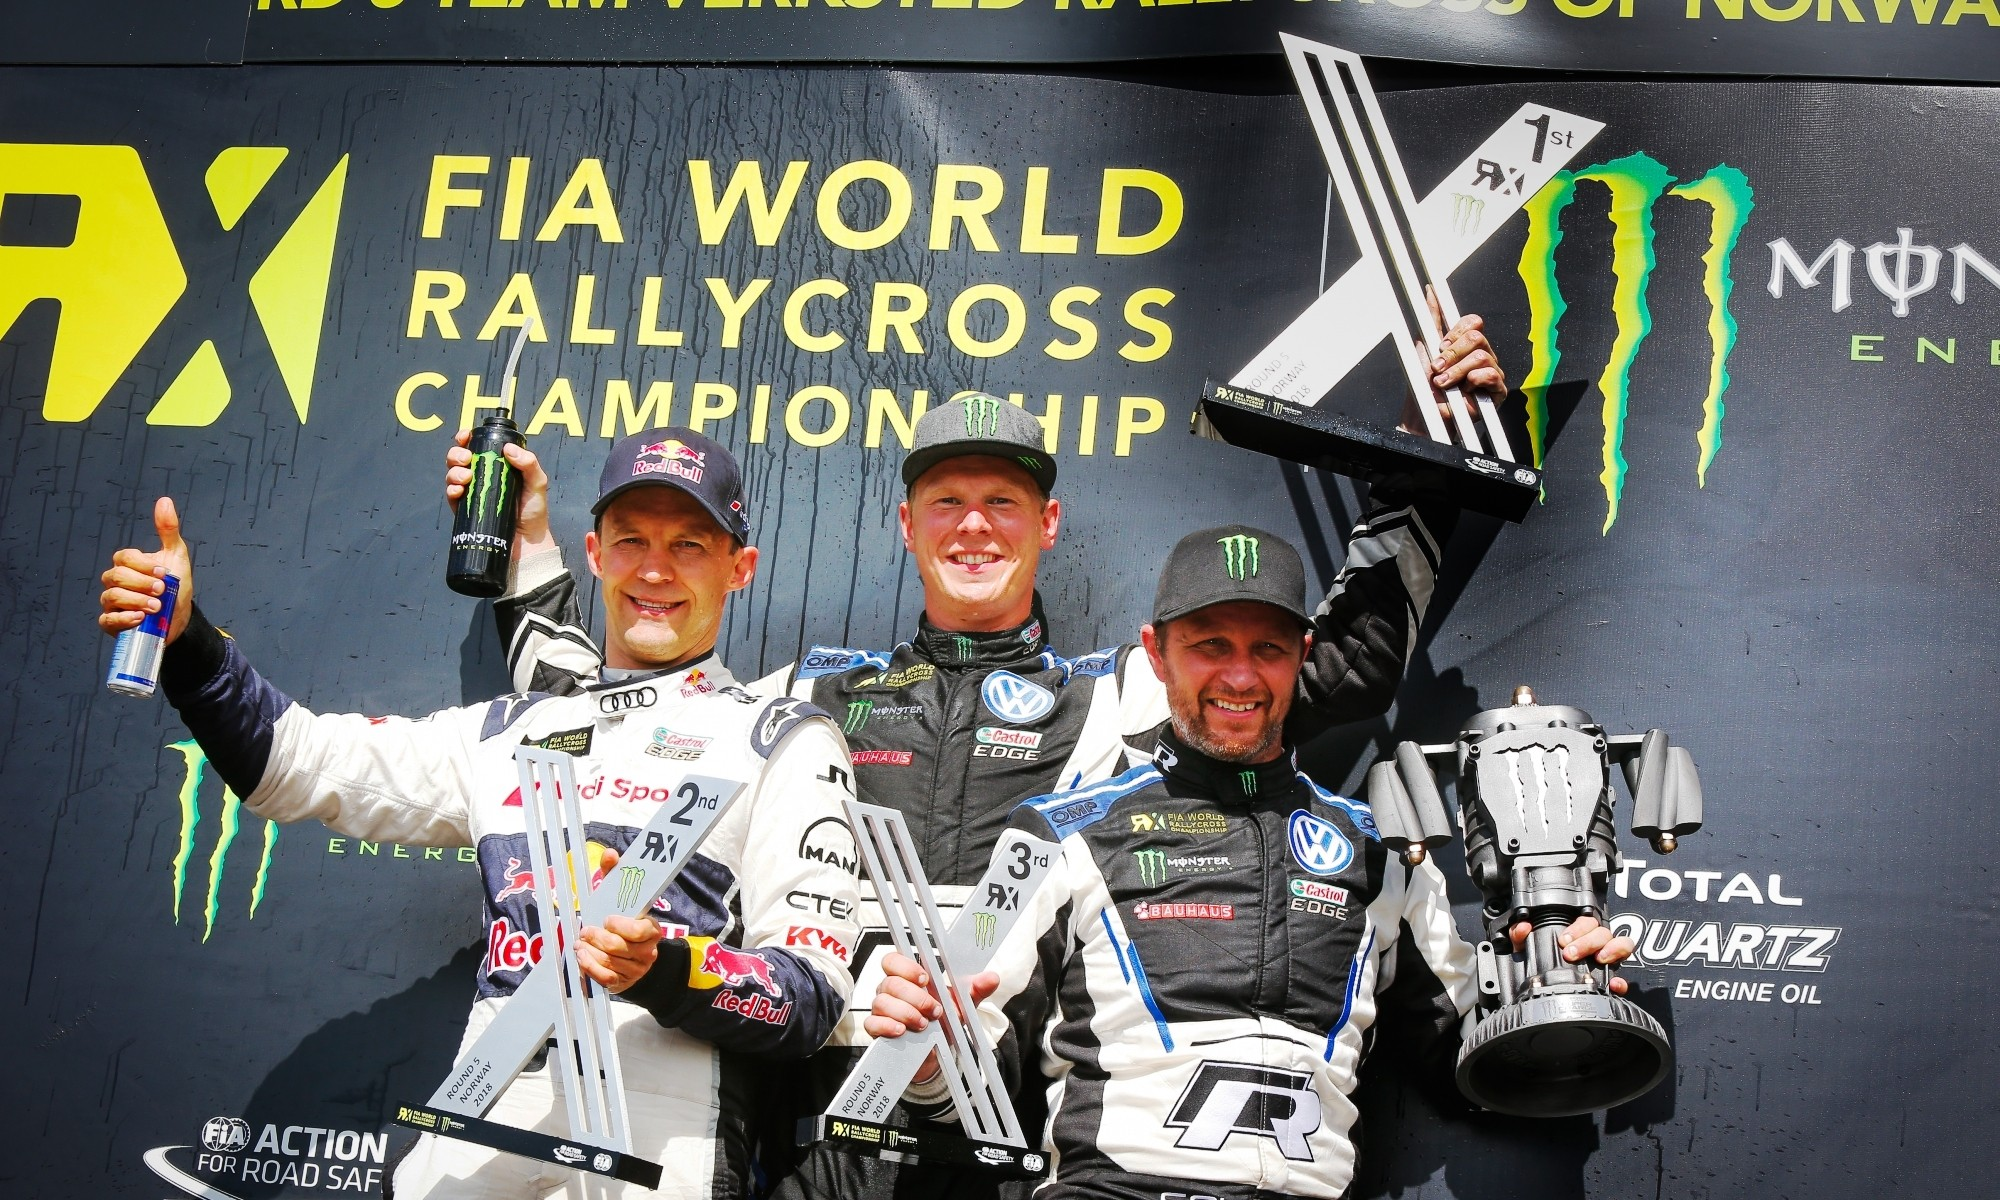 The FIA World Rallycross podium